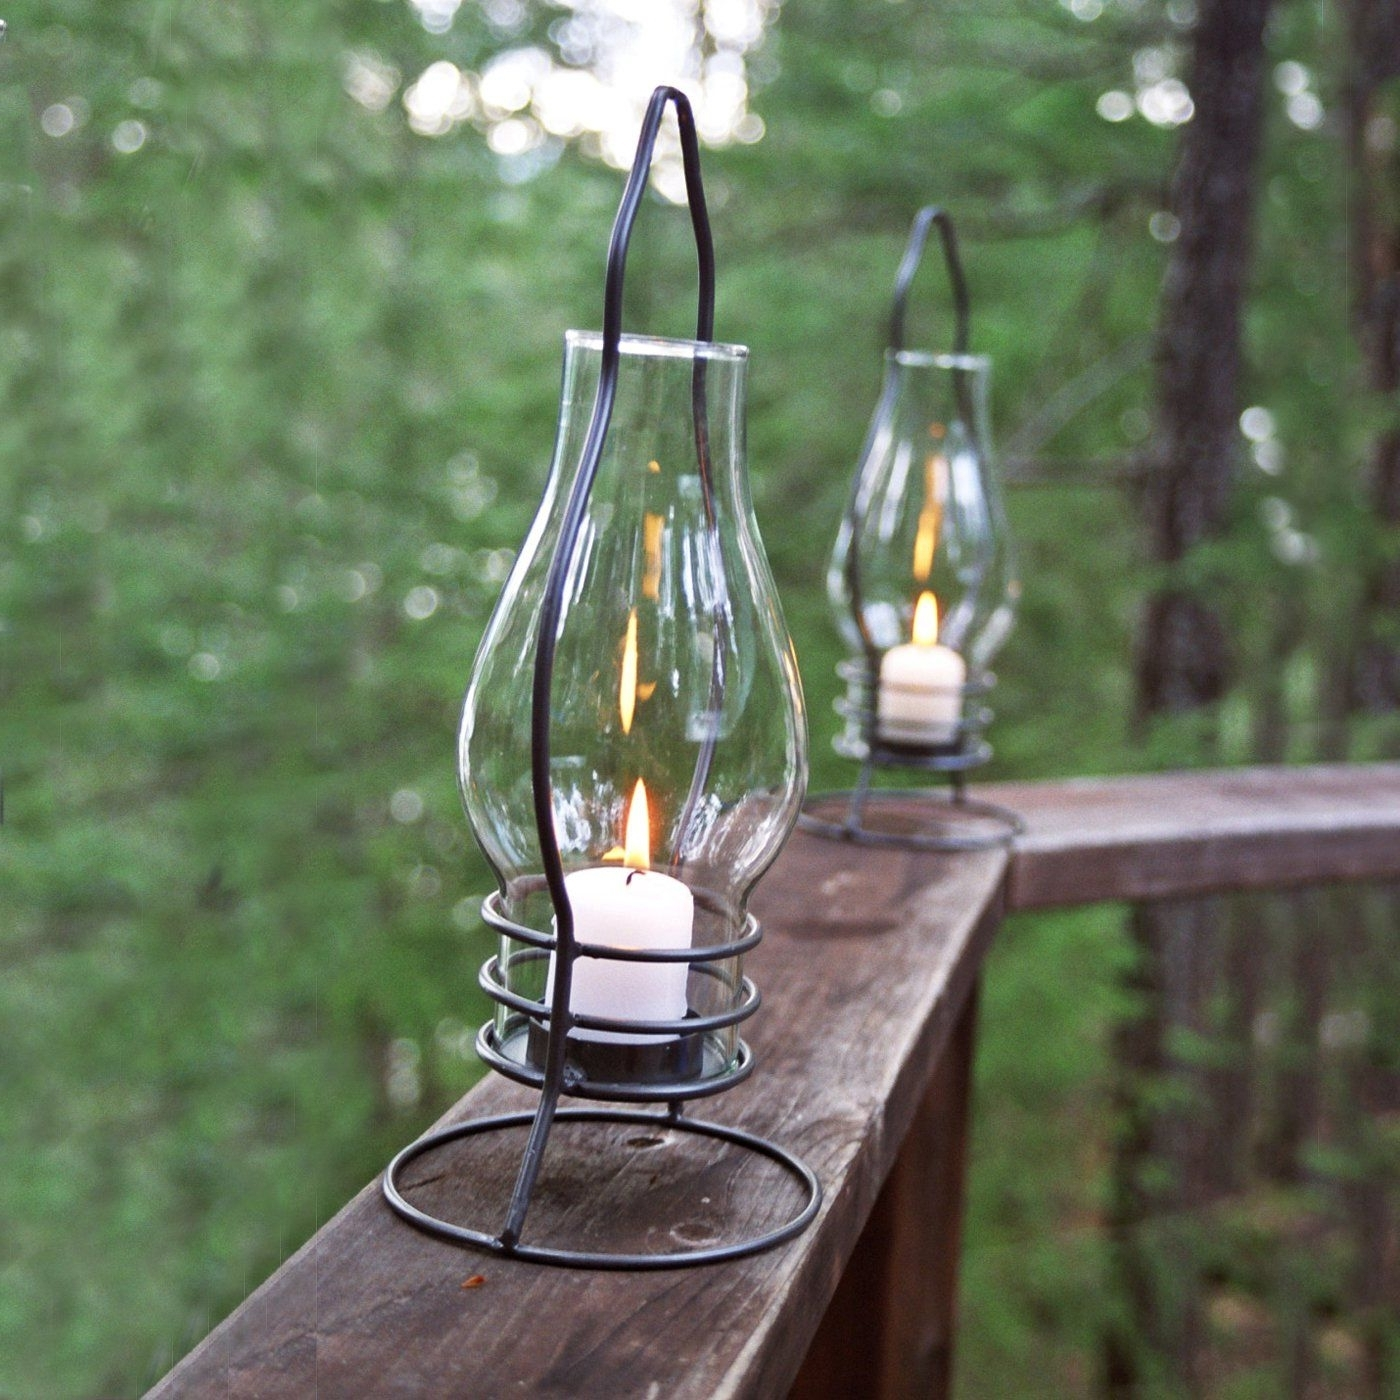 Pangaea Home And Garden Fm C2350 Iron Outdoor Table Lantern #themine Regarding 2019 Outdoor Table Lanterns (View 18 of 20)